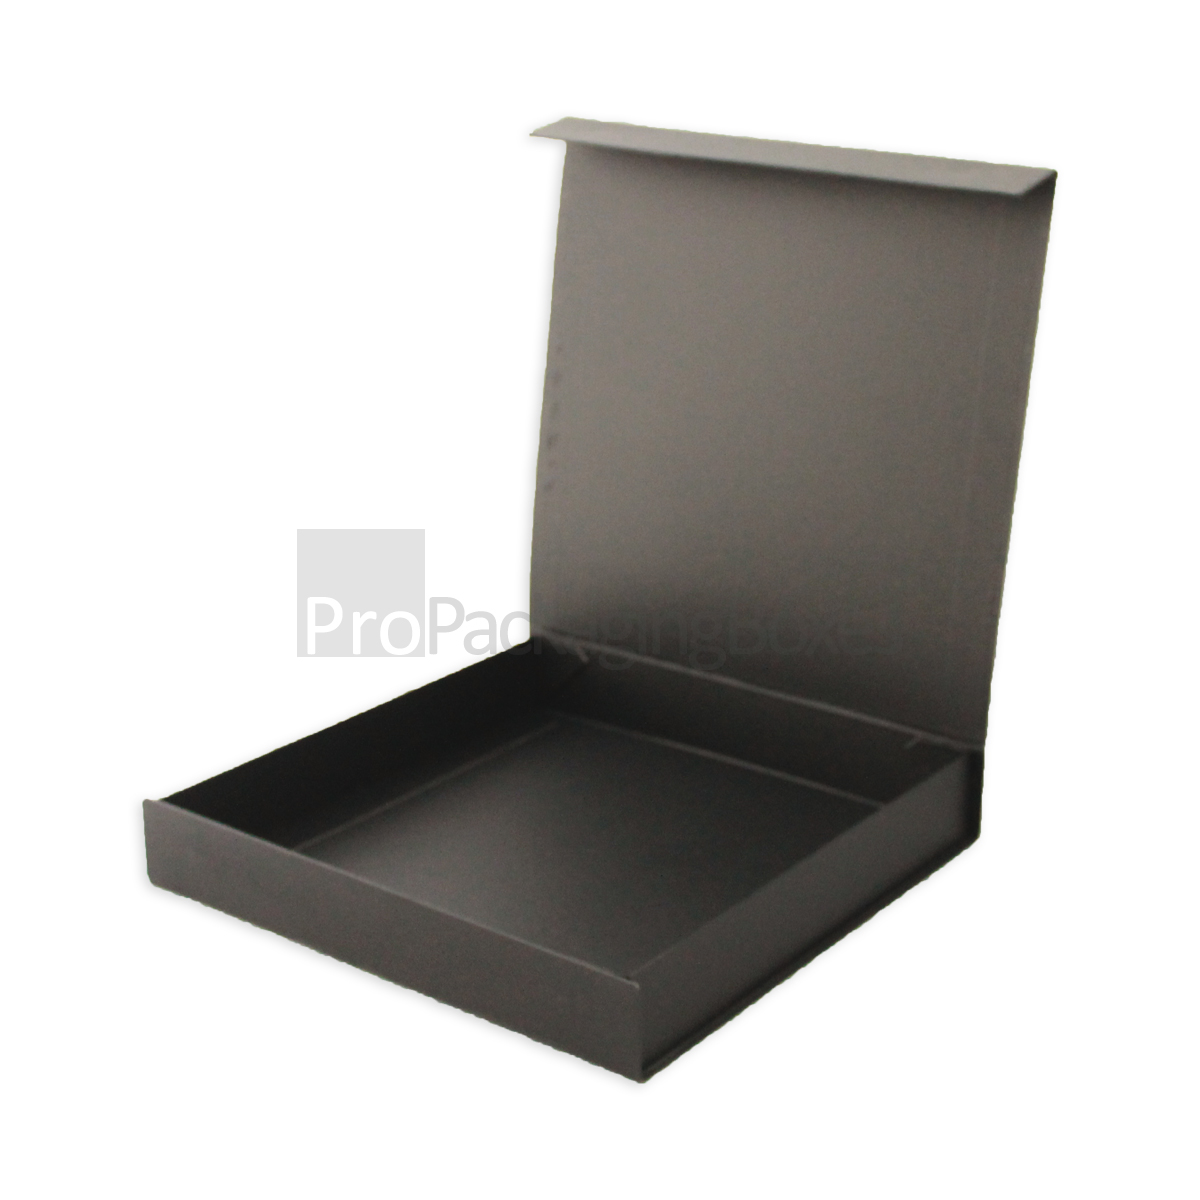 Rigidhardboard Luxury stock folding boxes